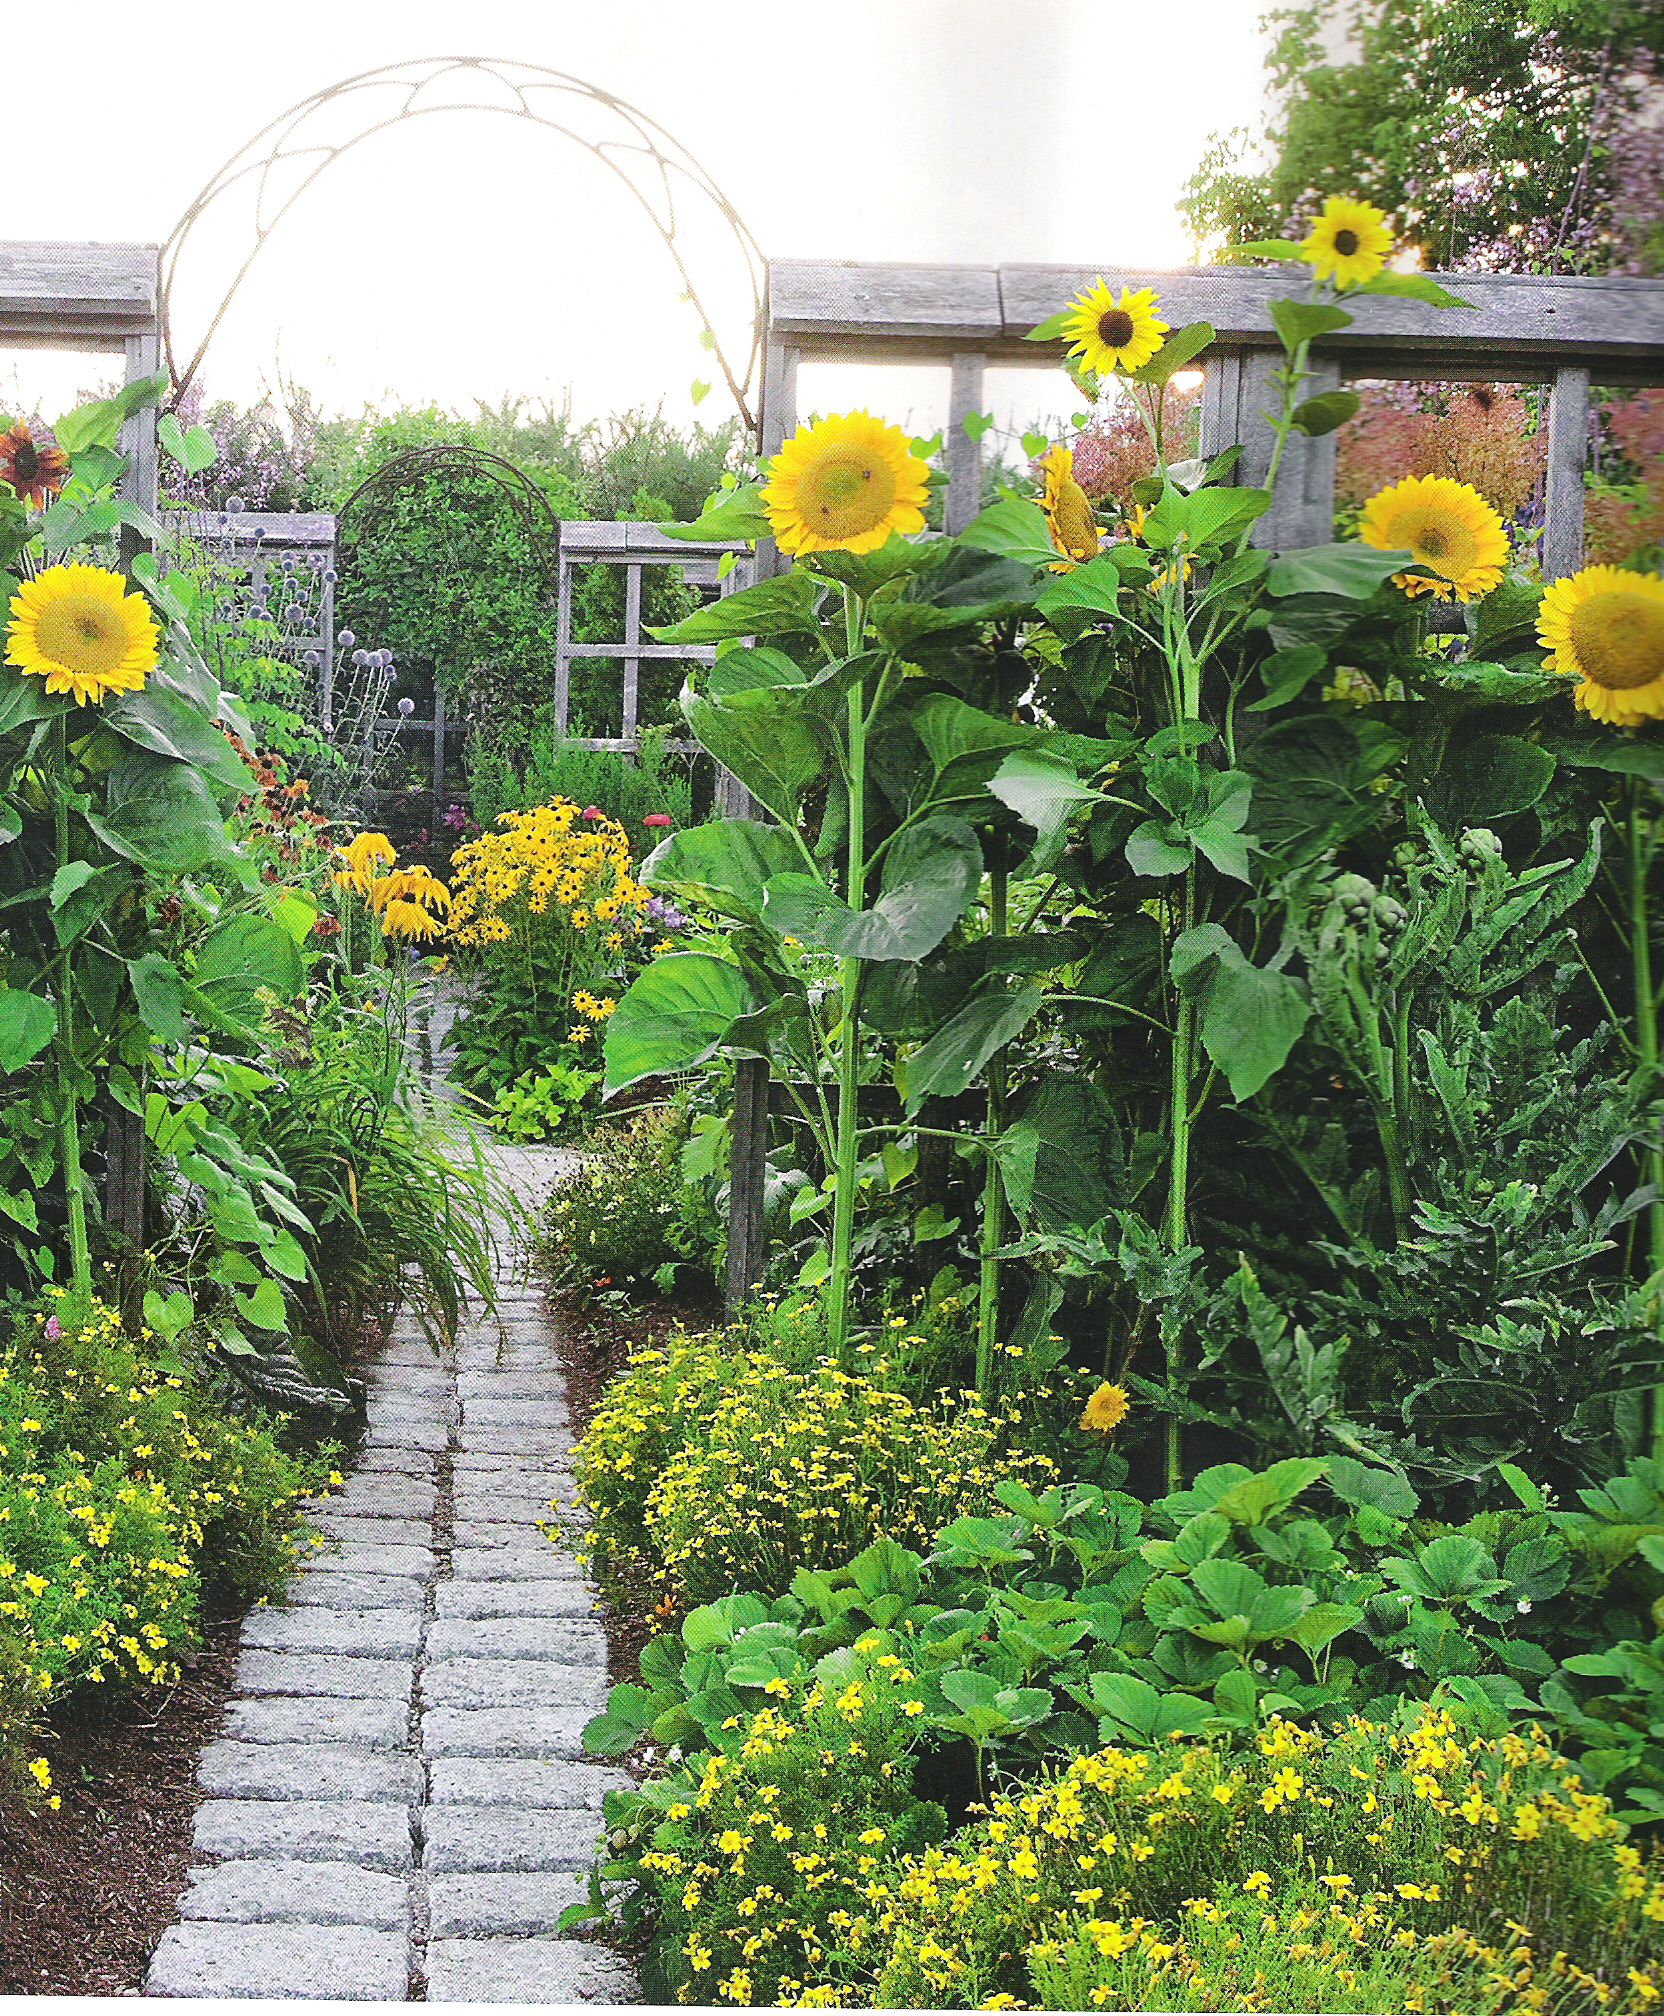 Ideas For Flowers In Backyard: Along The Brick Path Through The Vegetable Garden, Bloom